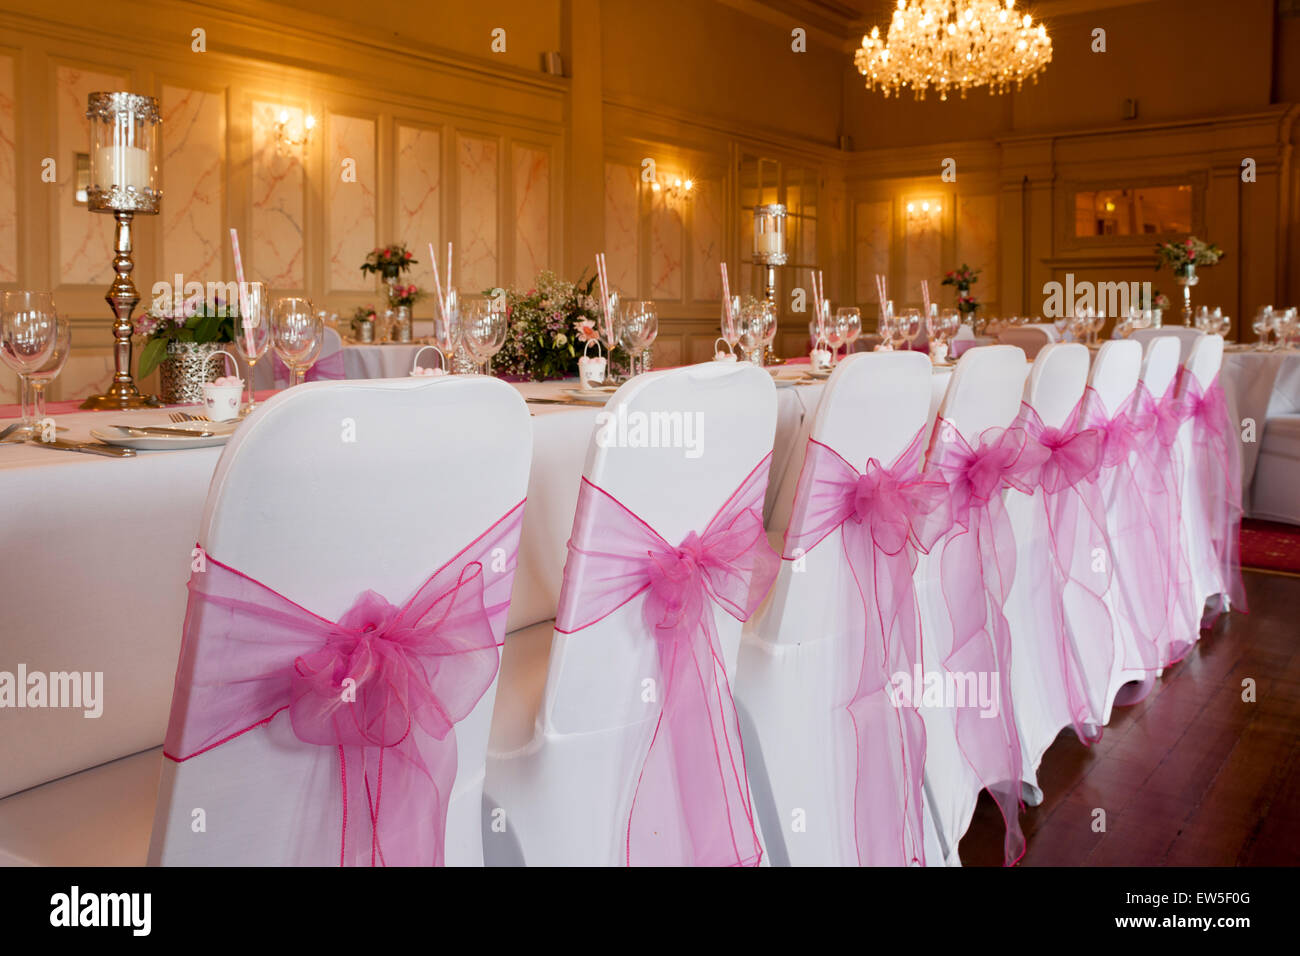 wedding top table place settings and chairs with bows & wedding top table place settings and chairs with bows Stock Photo ...